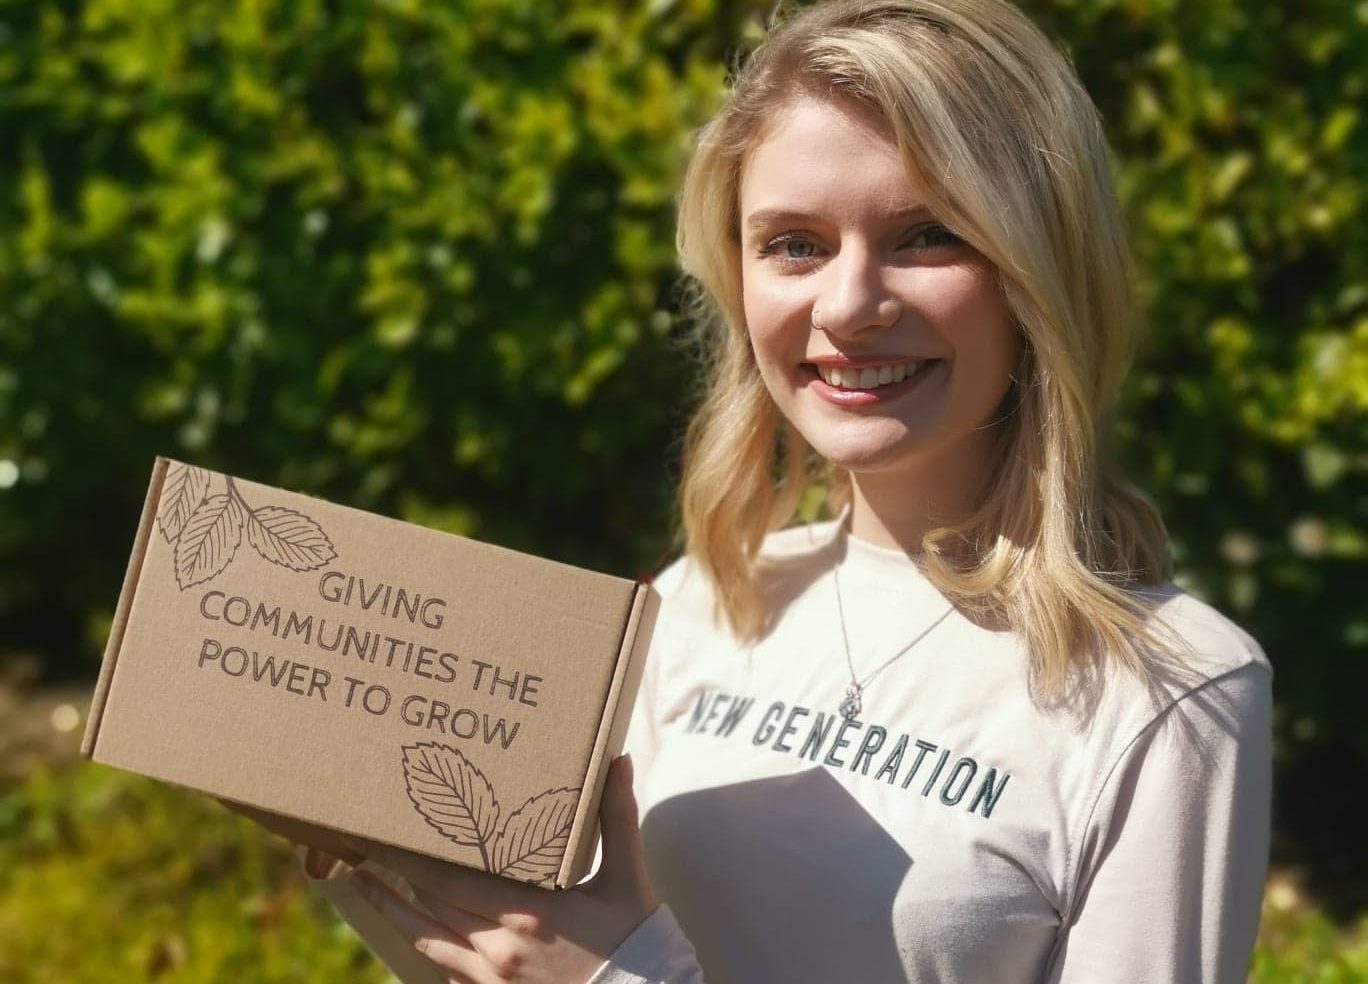 Cultivate Aberdeen volunteer and Young Trustee, Emma Lawford